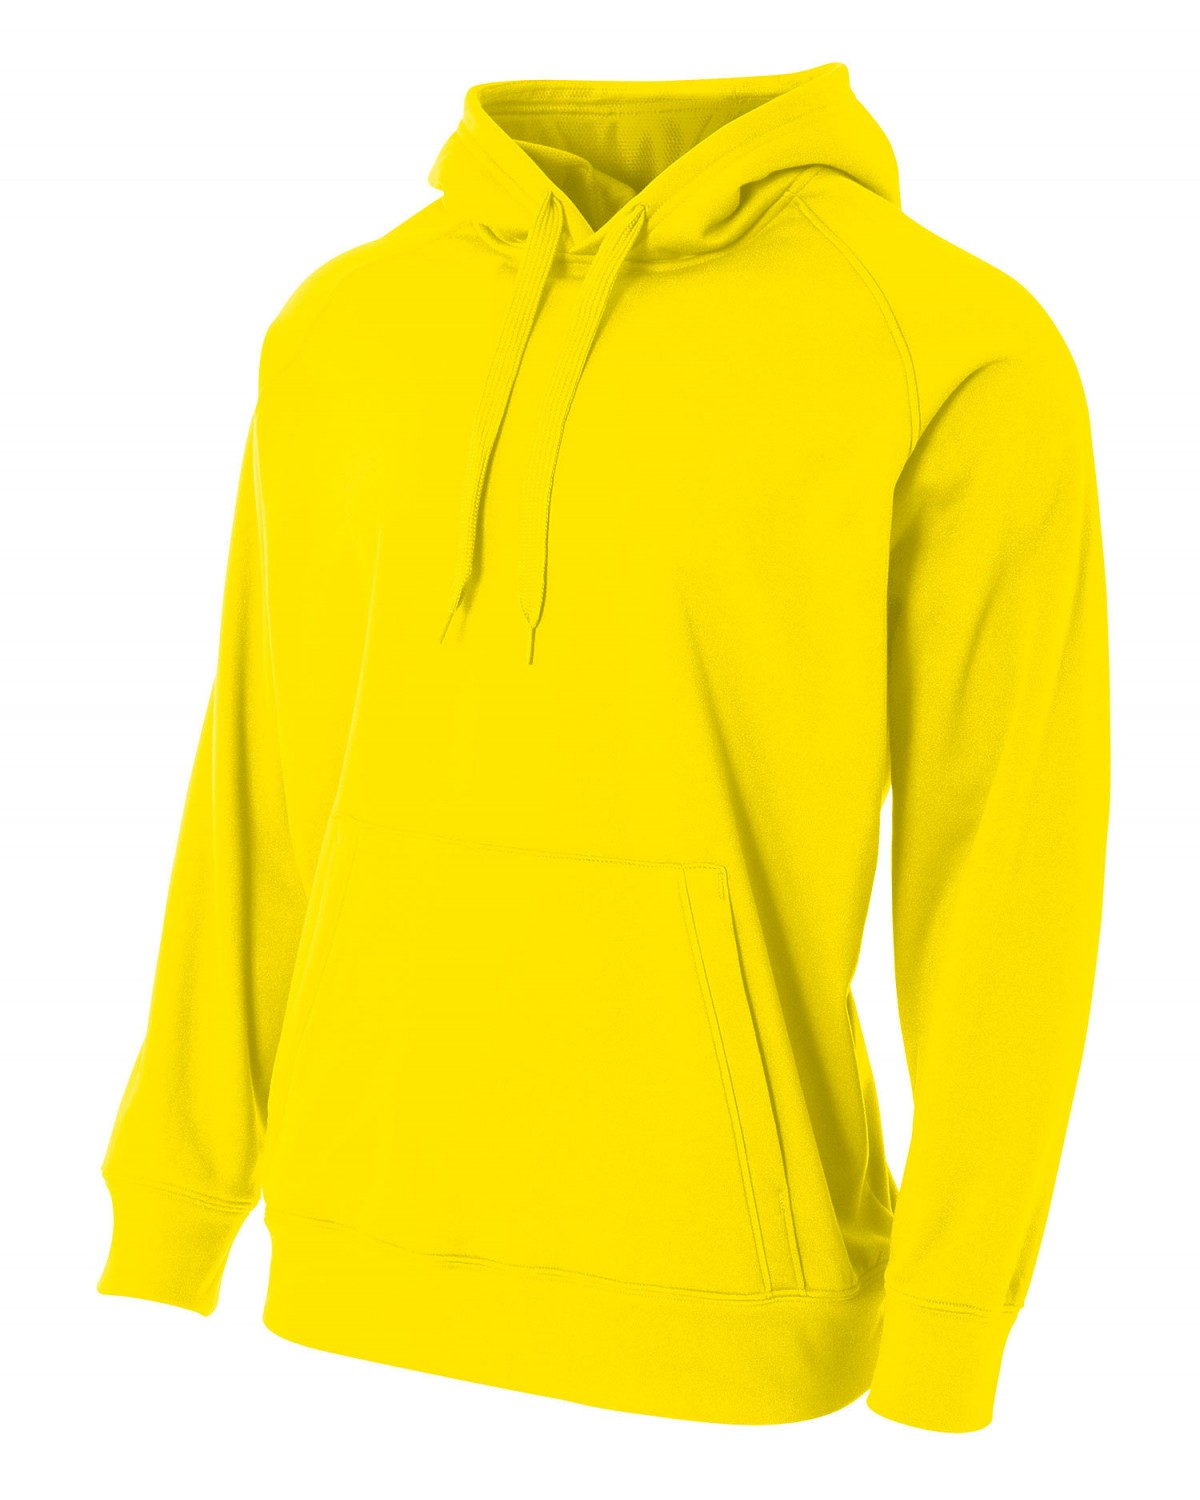 A4NB4237 A4 SAFETY YELLOW